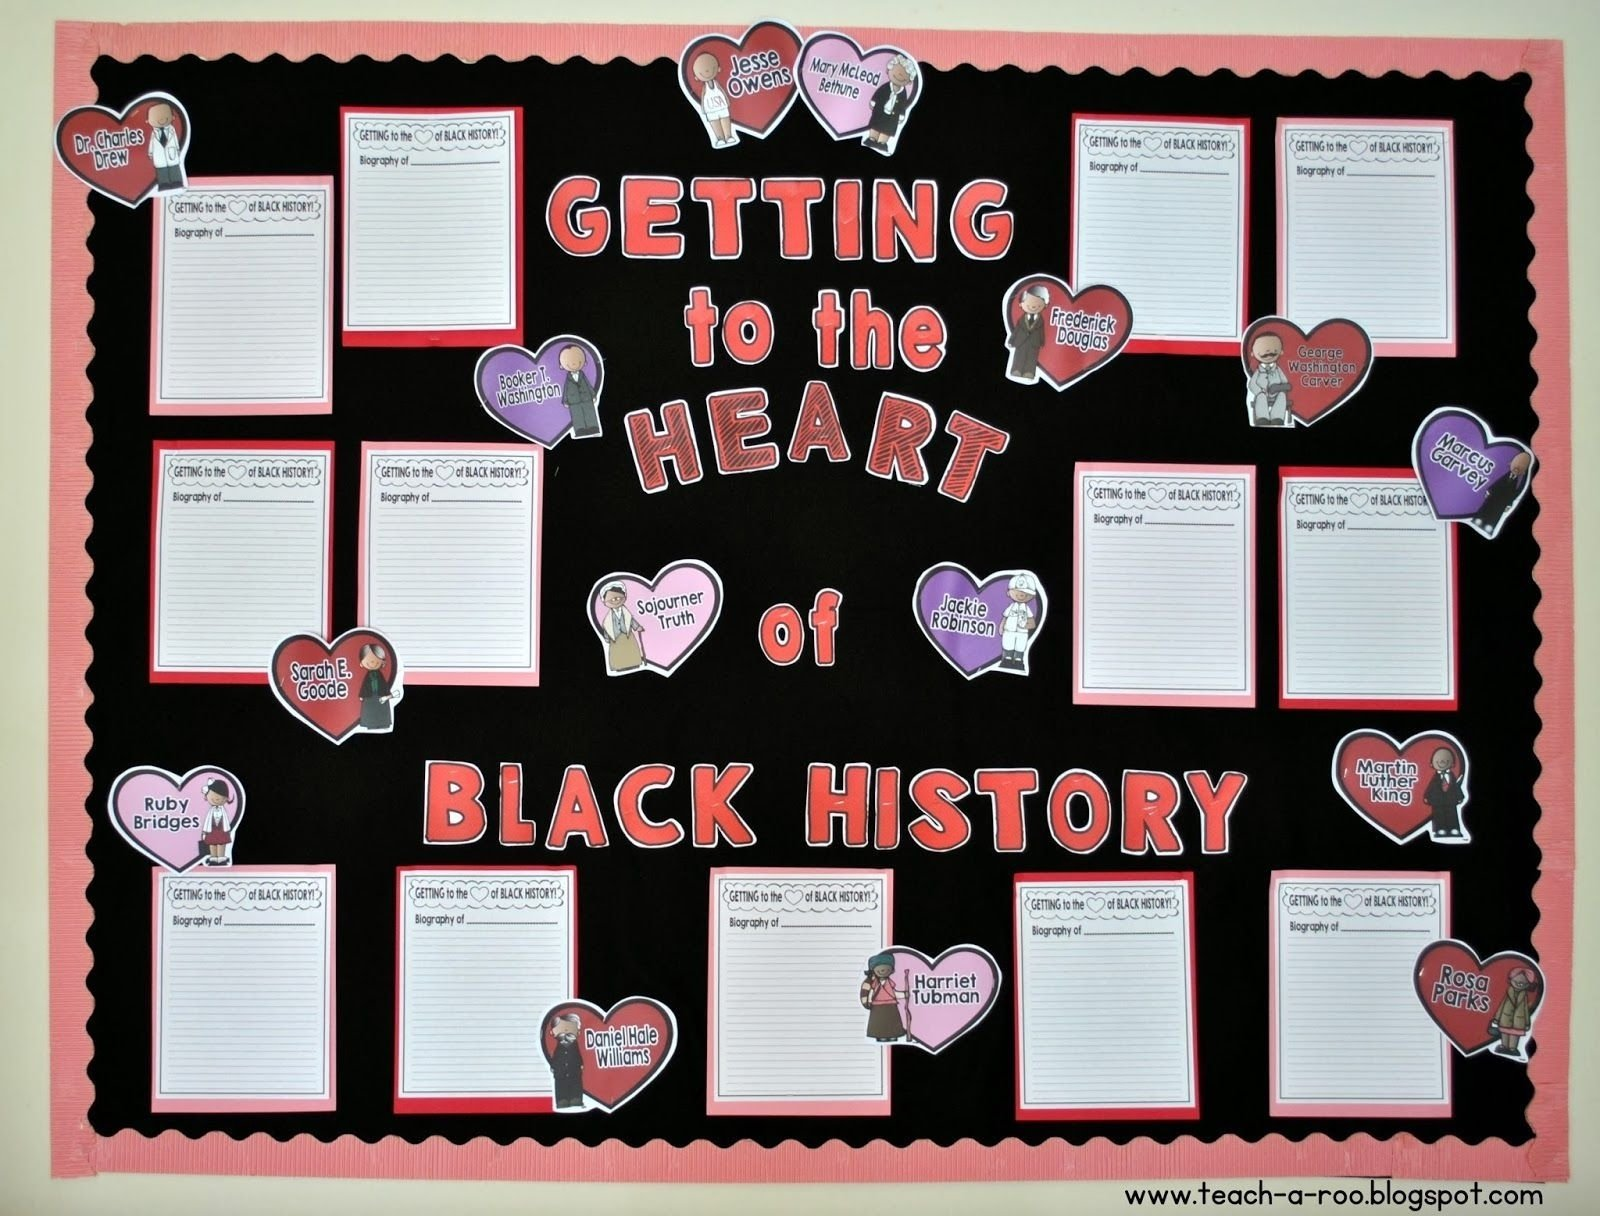 10 Unique Black History Bulletin Board Ideas getting to the heart of black history month freebie top teachers 1 2020